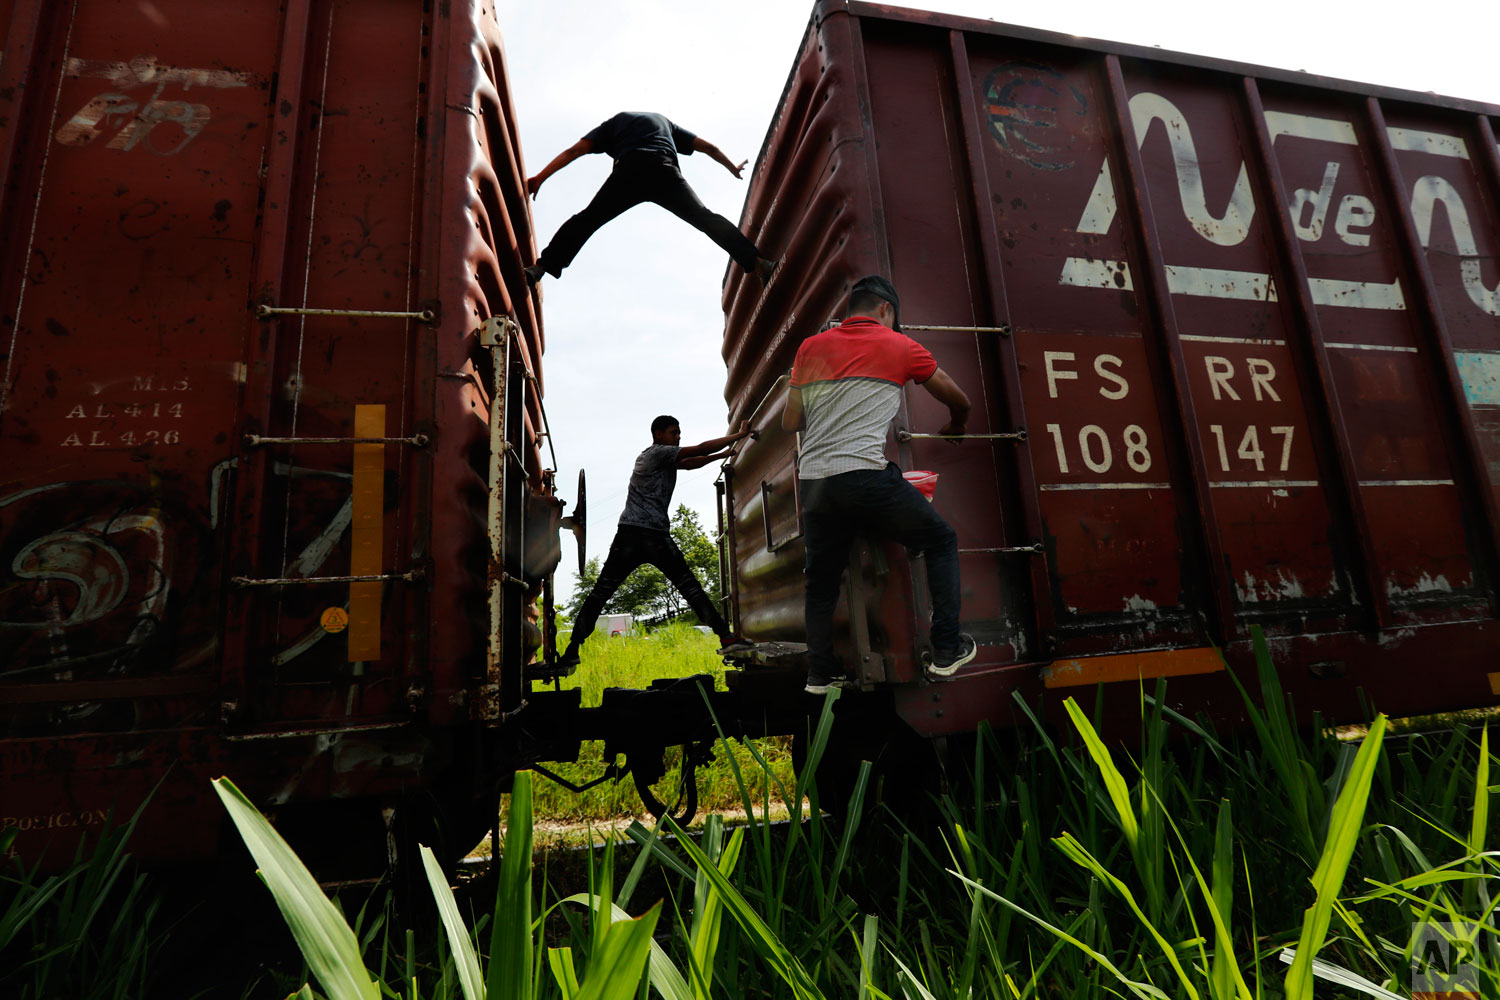 Honduran migrants ride a freight train on their way north, in Salto del Agua, Chiapas state, Mexico, Tuesday, June 25, 2019.  (AP Photo/Marco Ugarte)